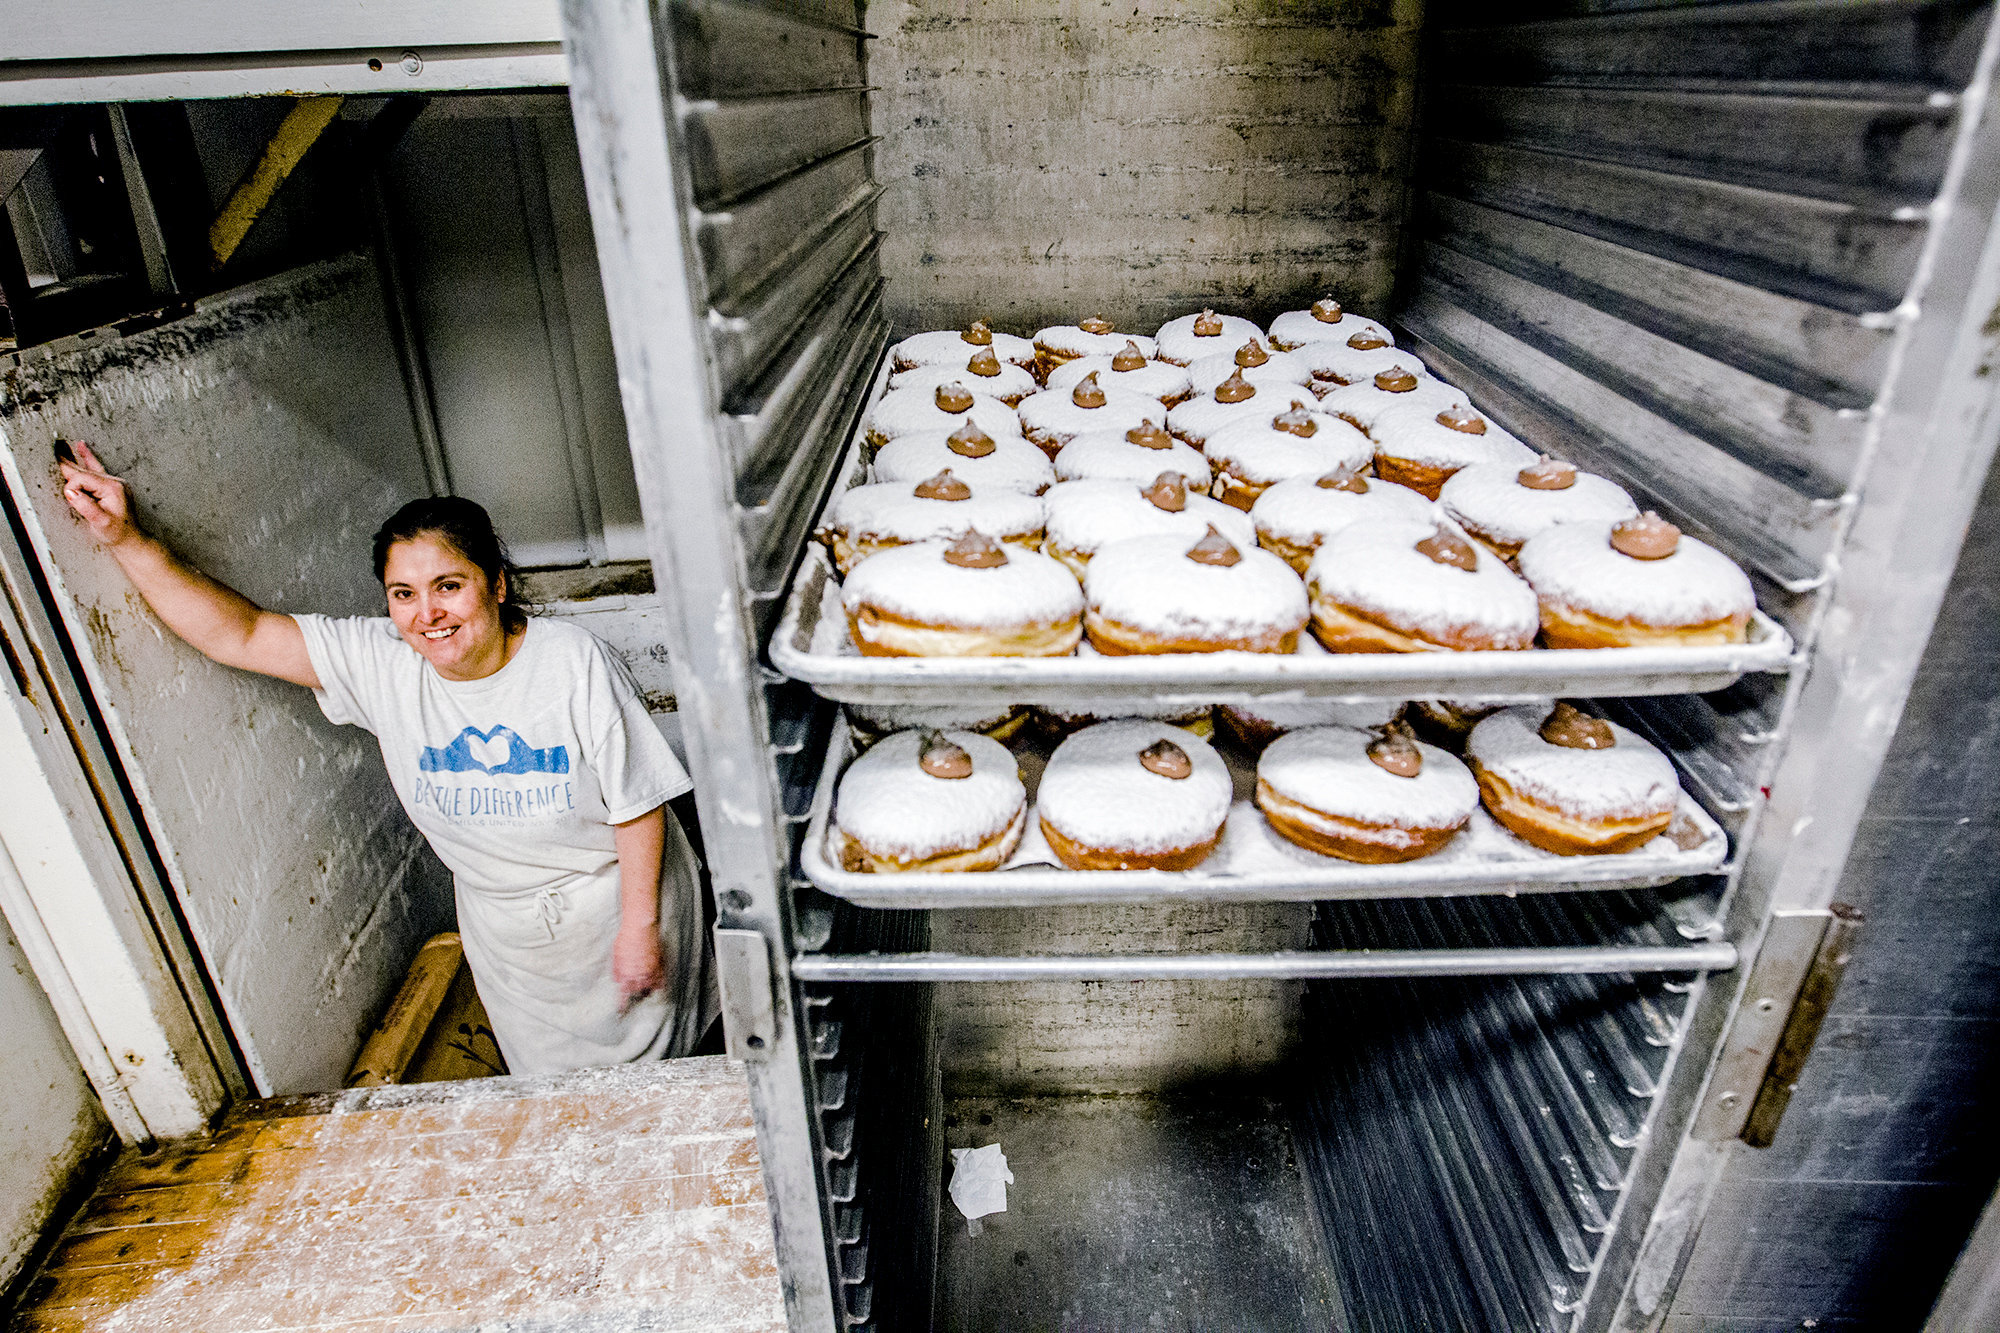 hnews_wed0210_paczkis7.jpg